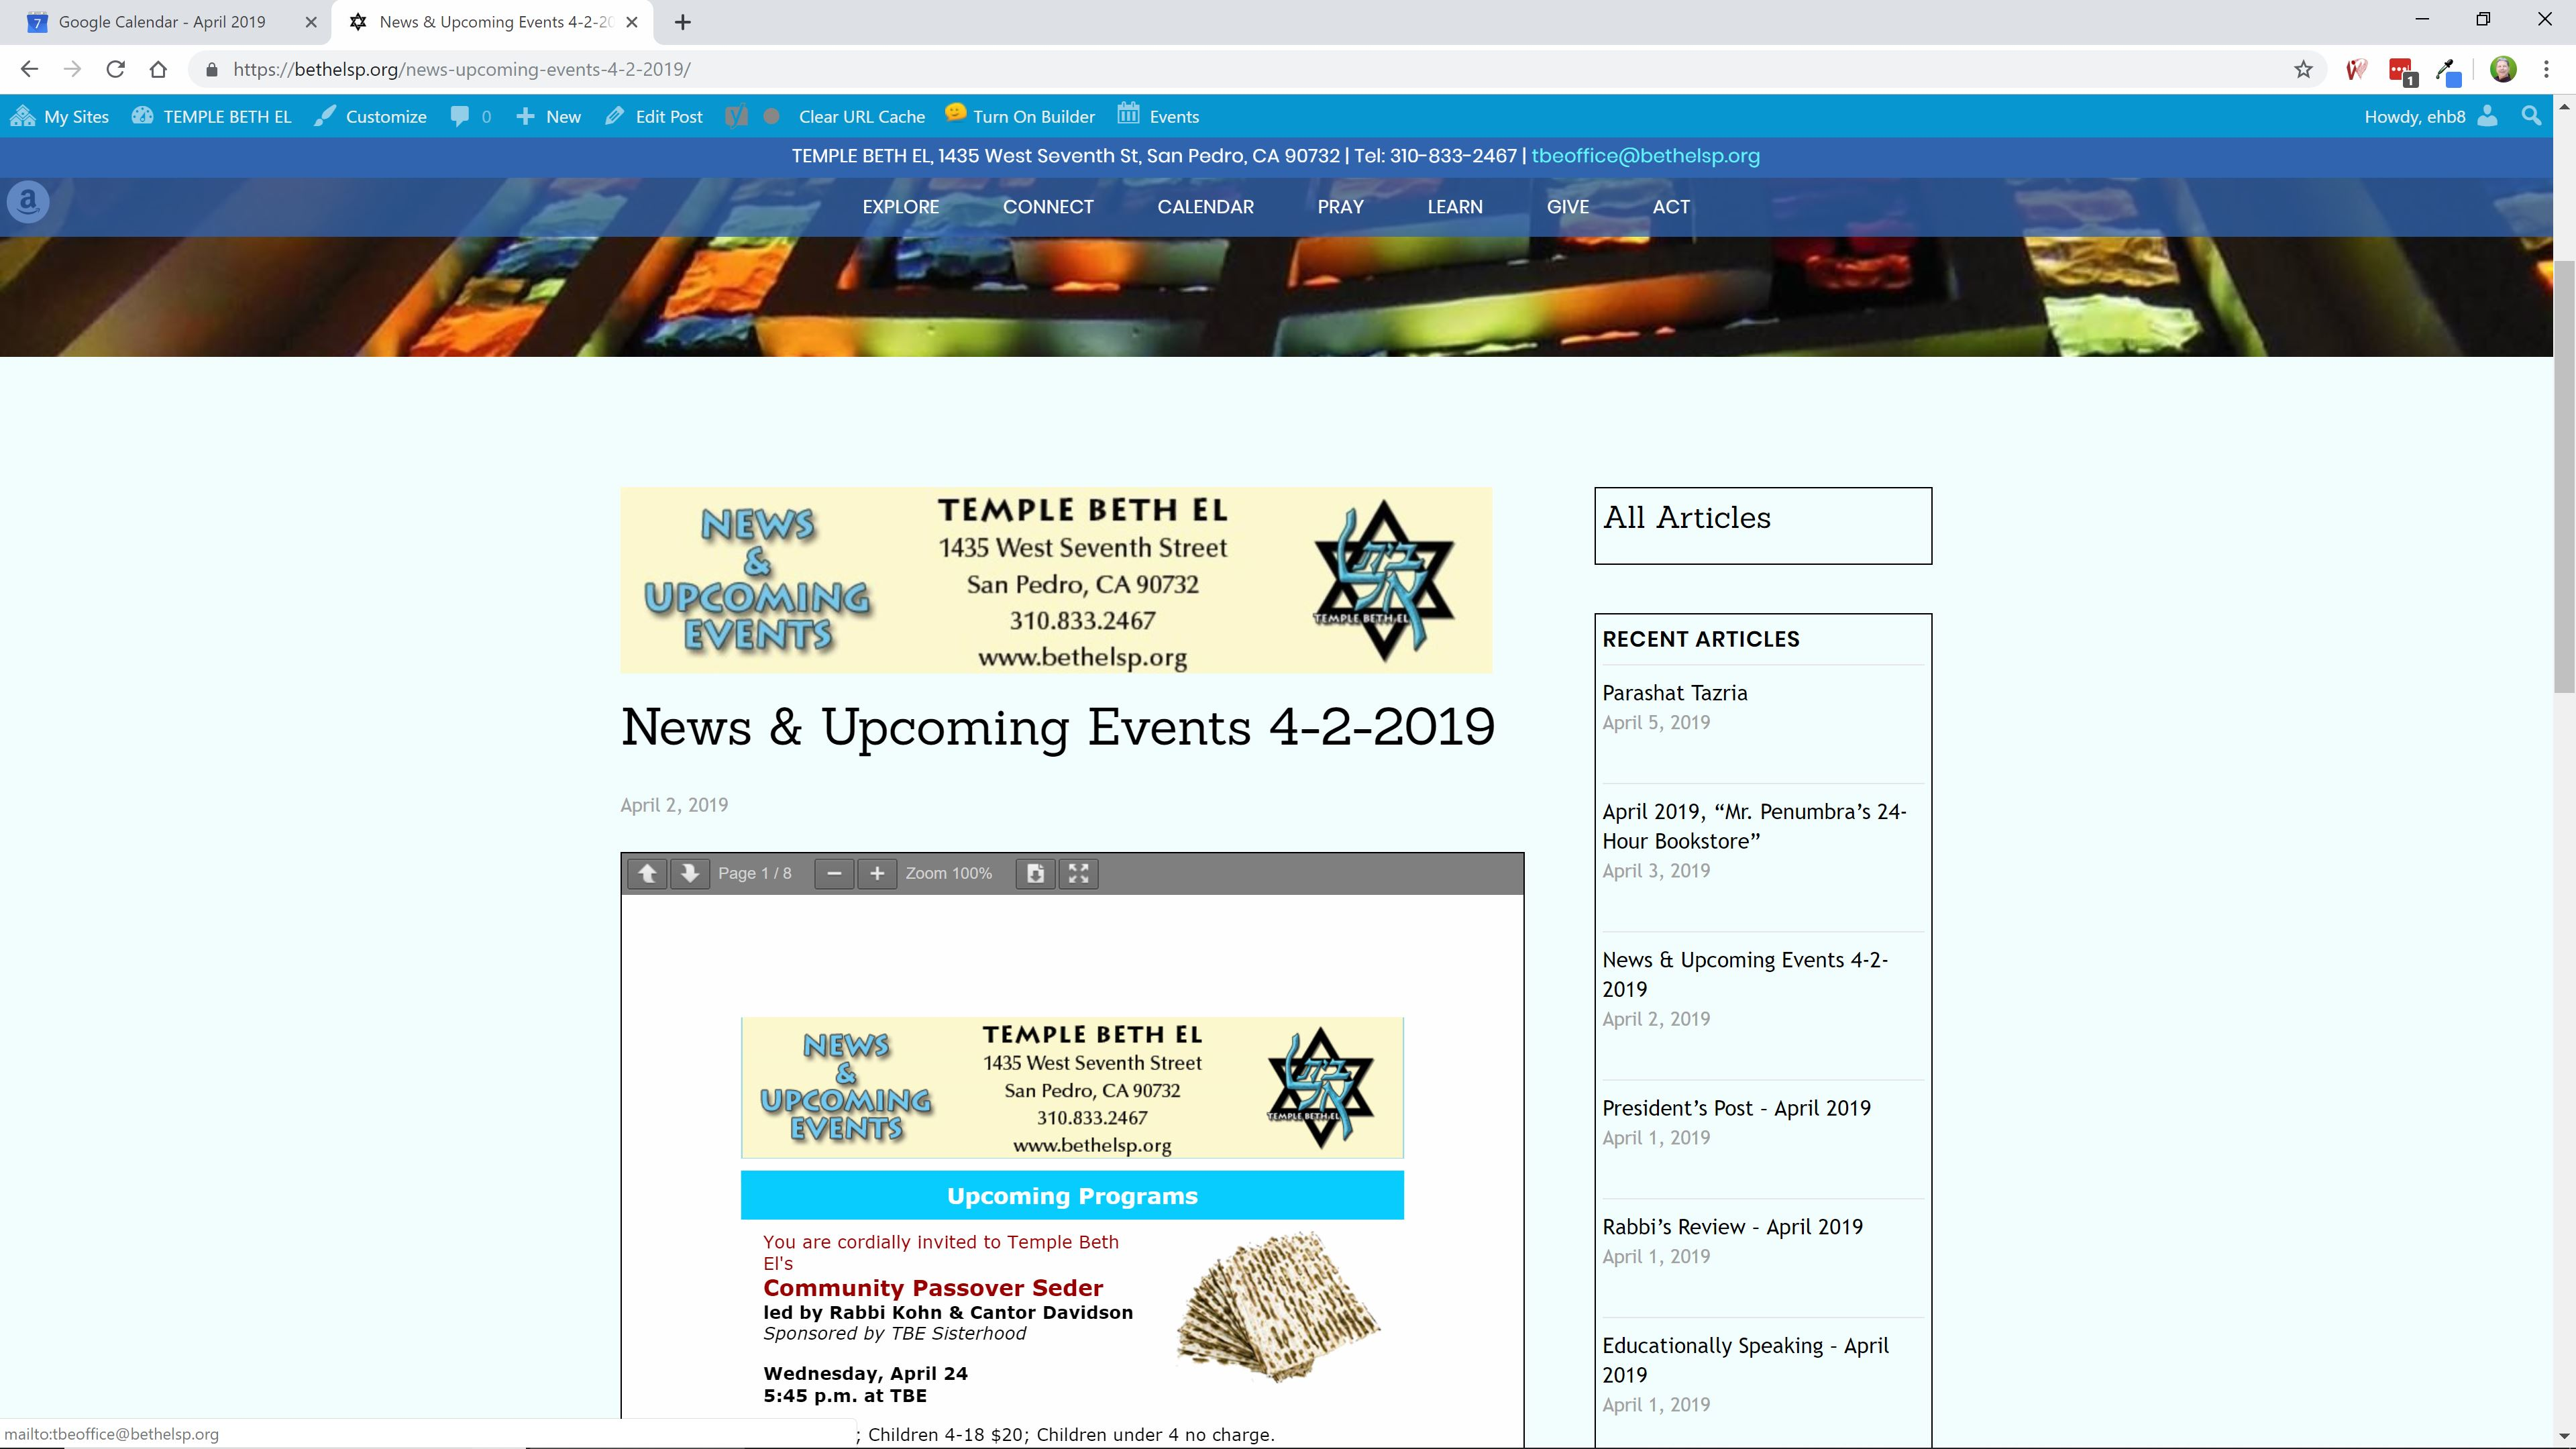 New-Website-News Post #5 - TEMPLE BETH EL